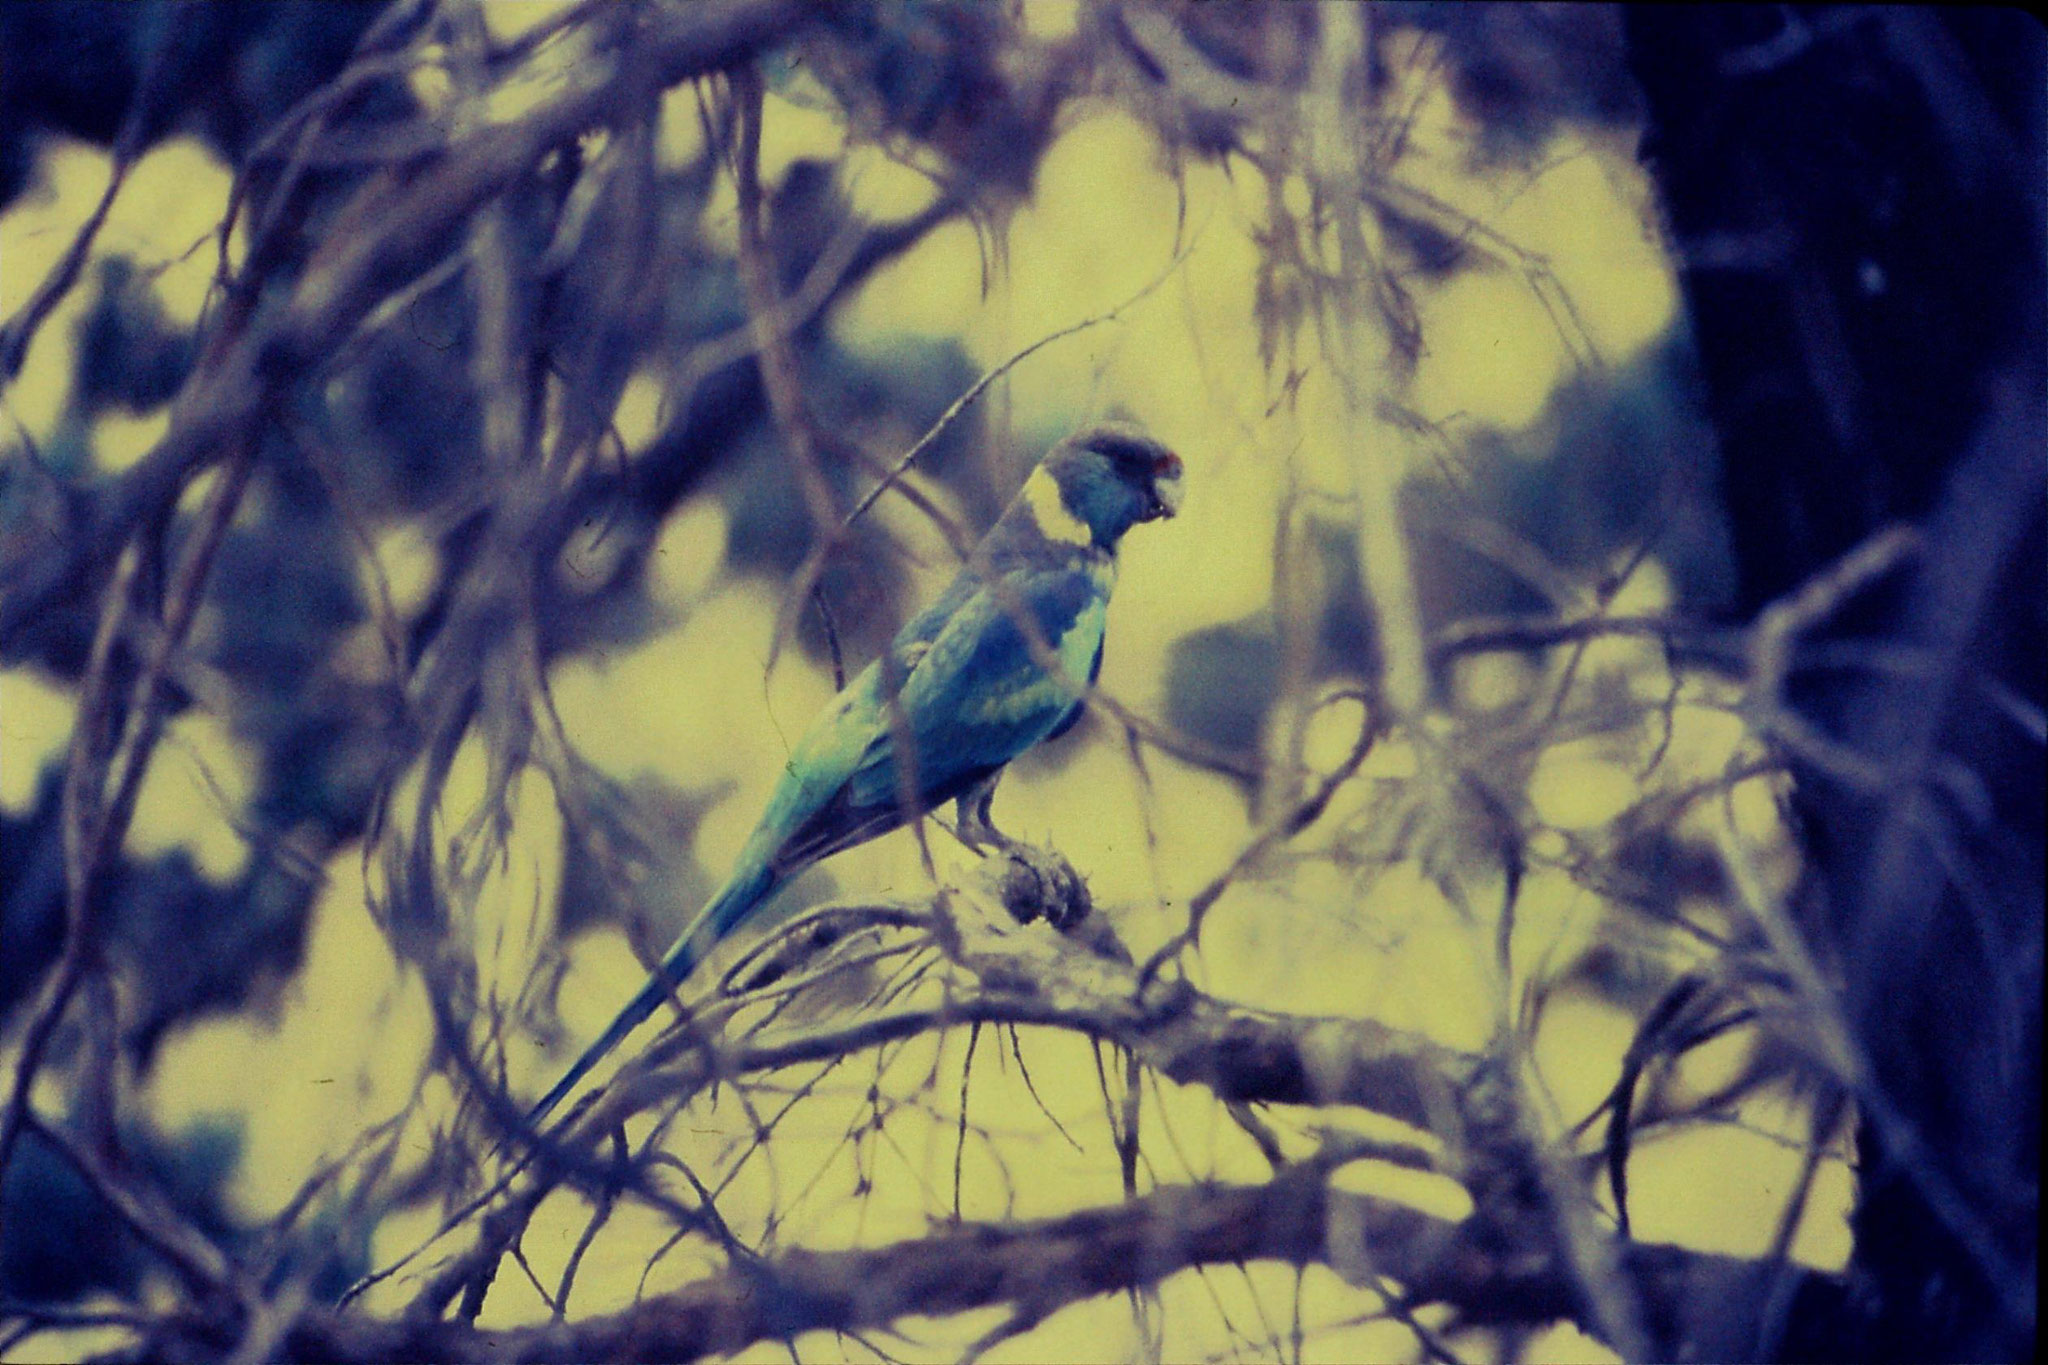 7/11/1990: 3: Flinders Ranges, Ringnecked parrot